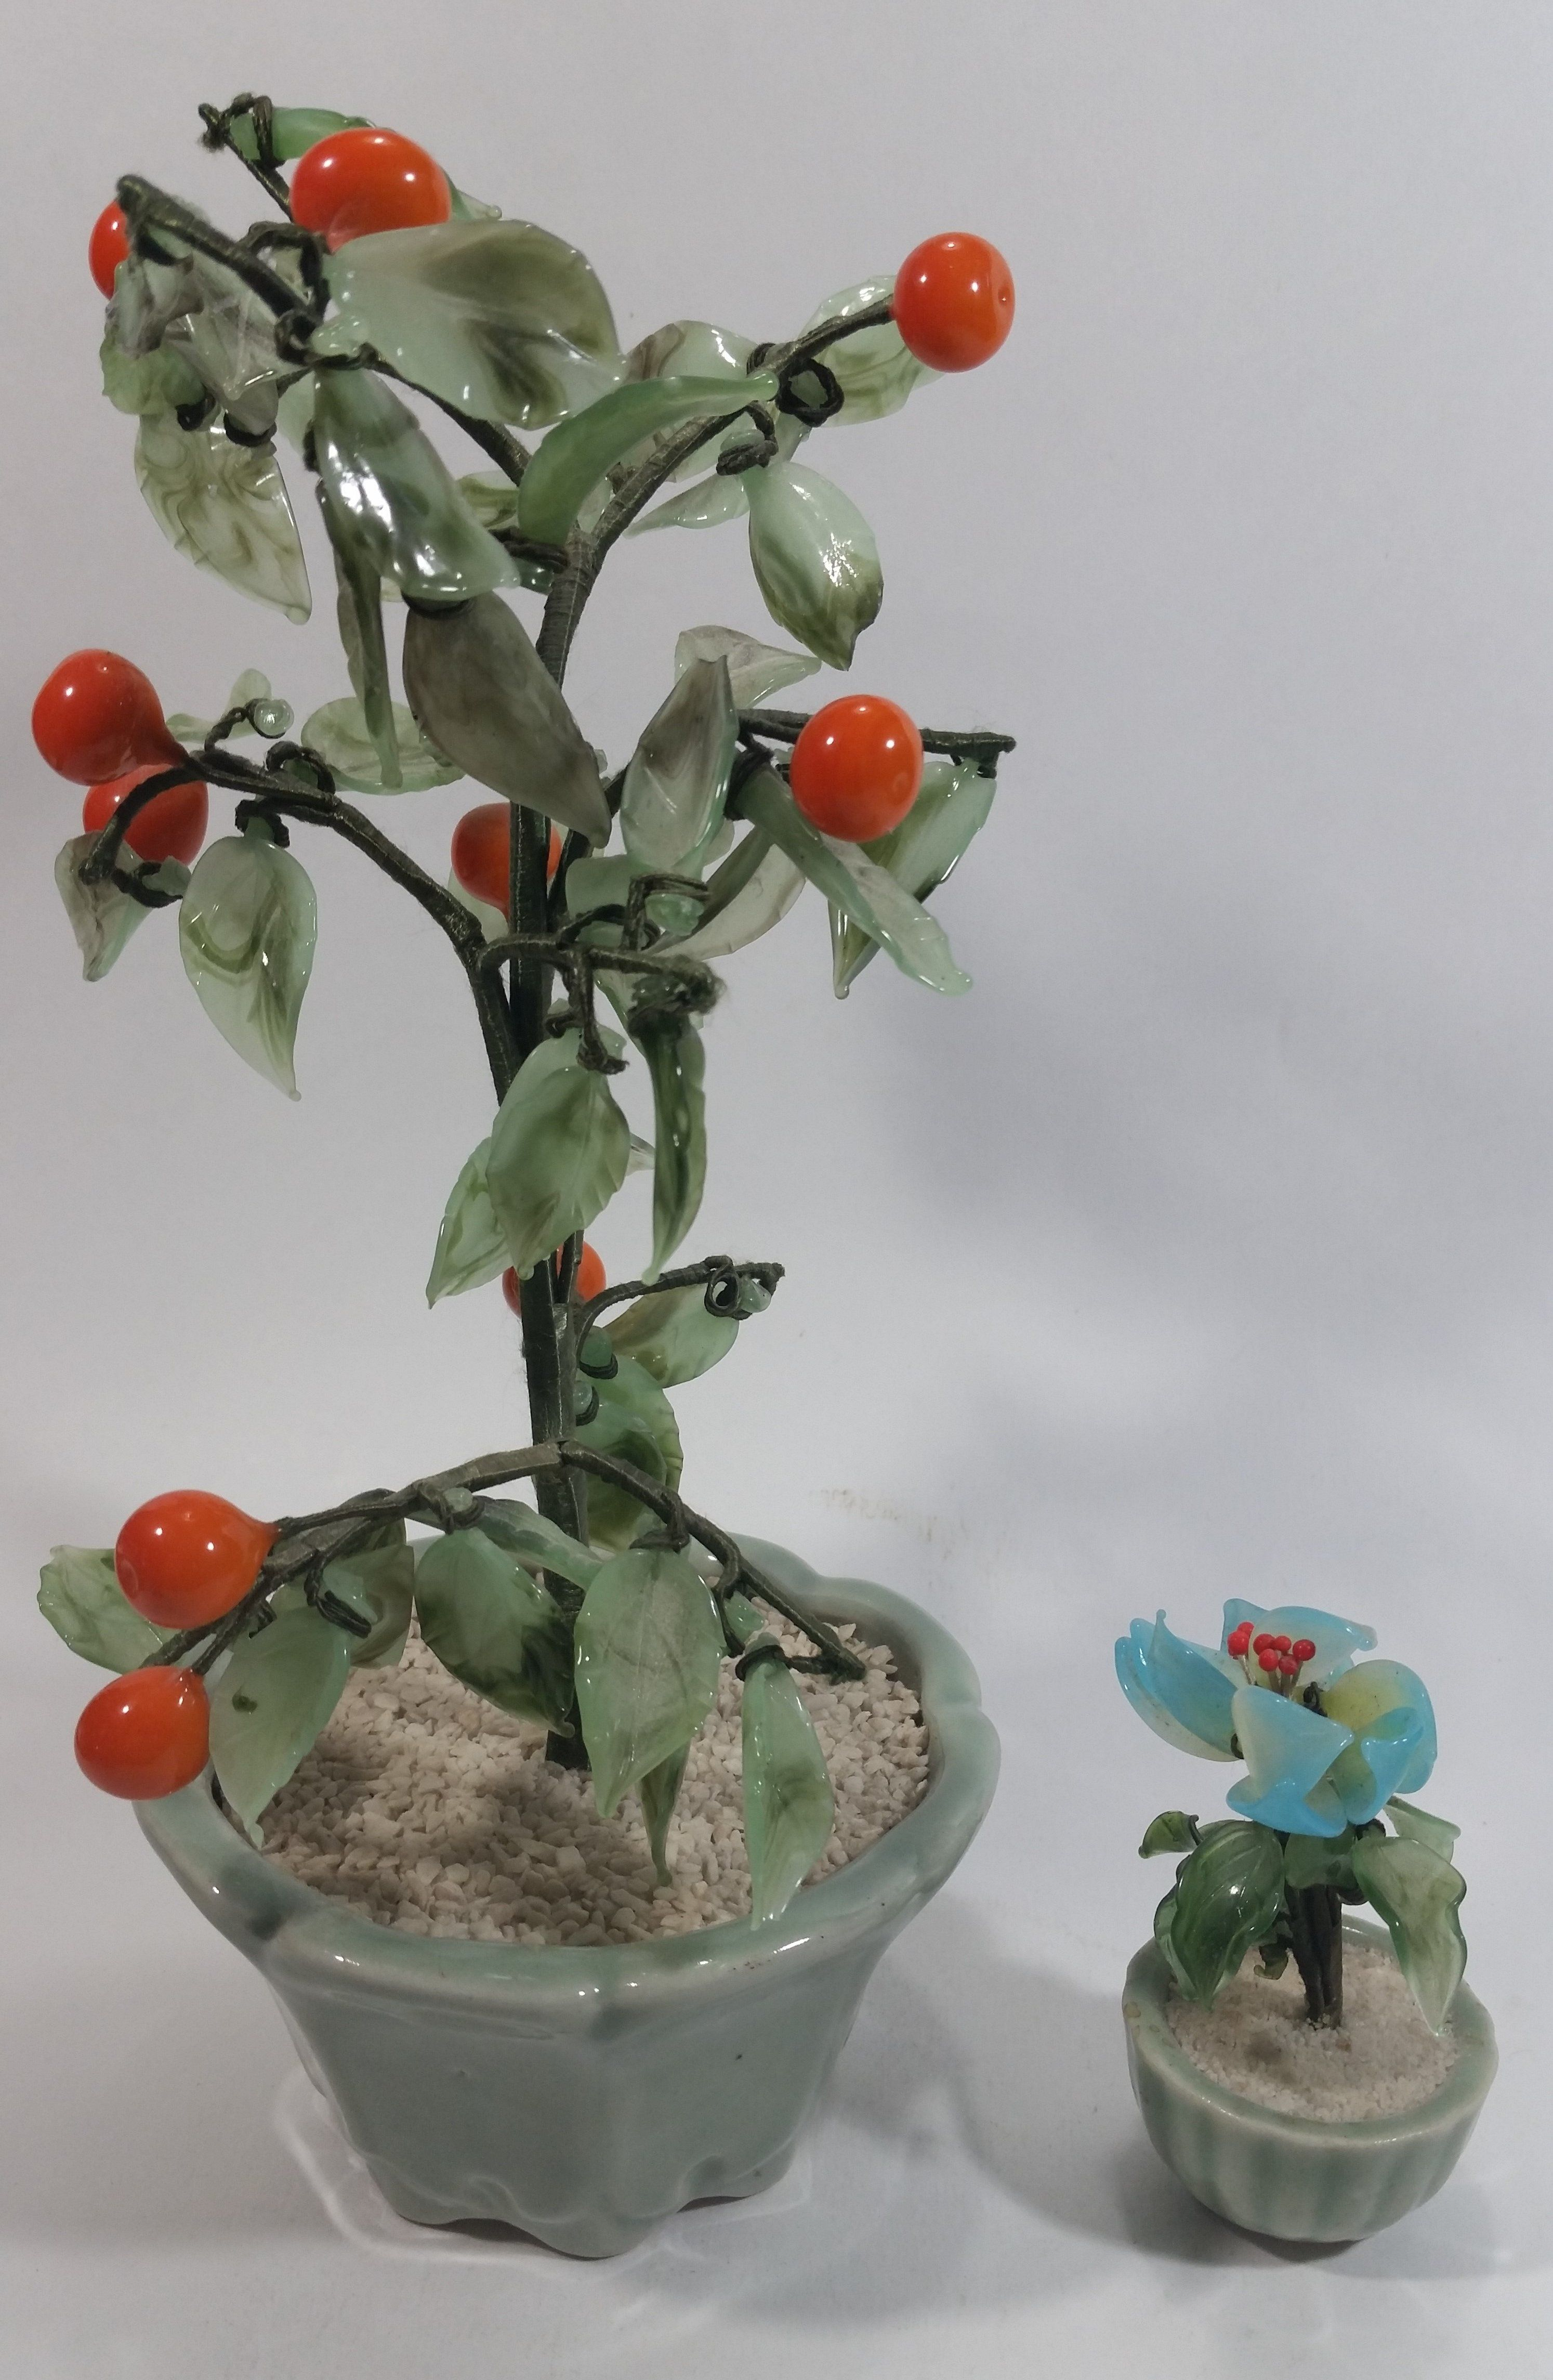 Set of 2 Artificial Glass Fruit Vegetable Tomato Plant